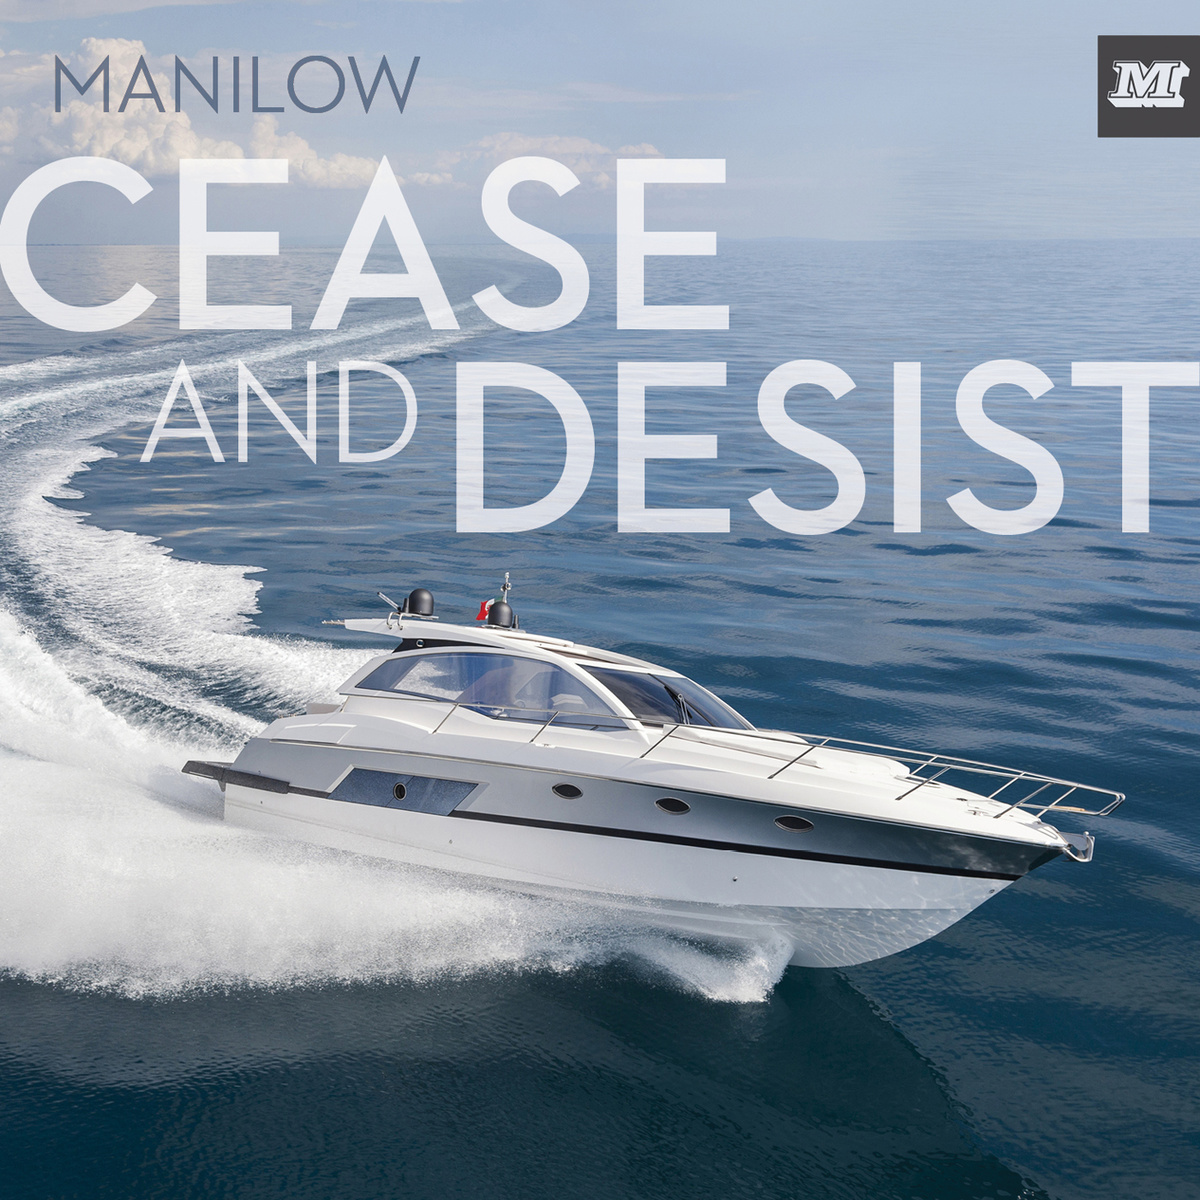 EP Review: Cease and Desist by Manilow